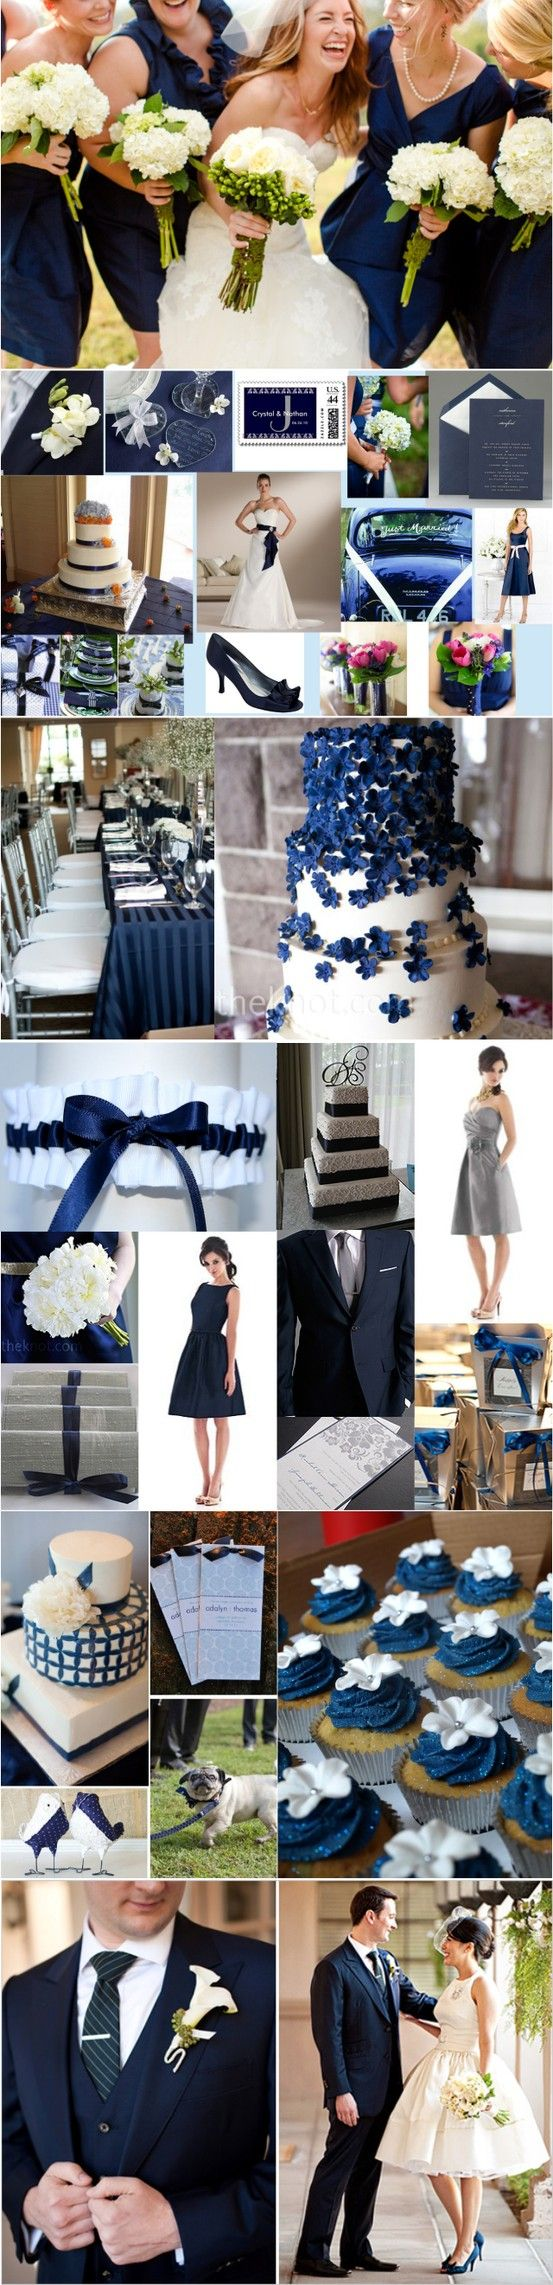 Navy colored wedding theme